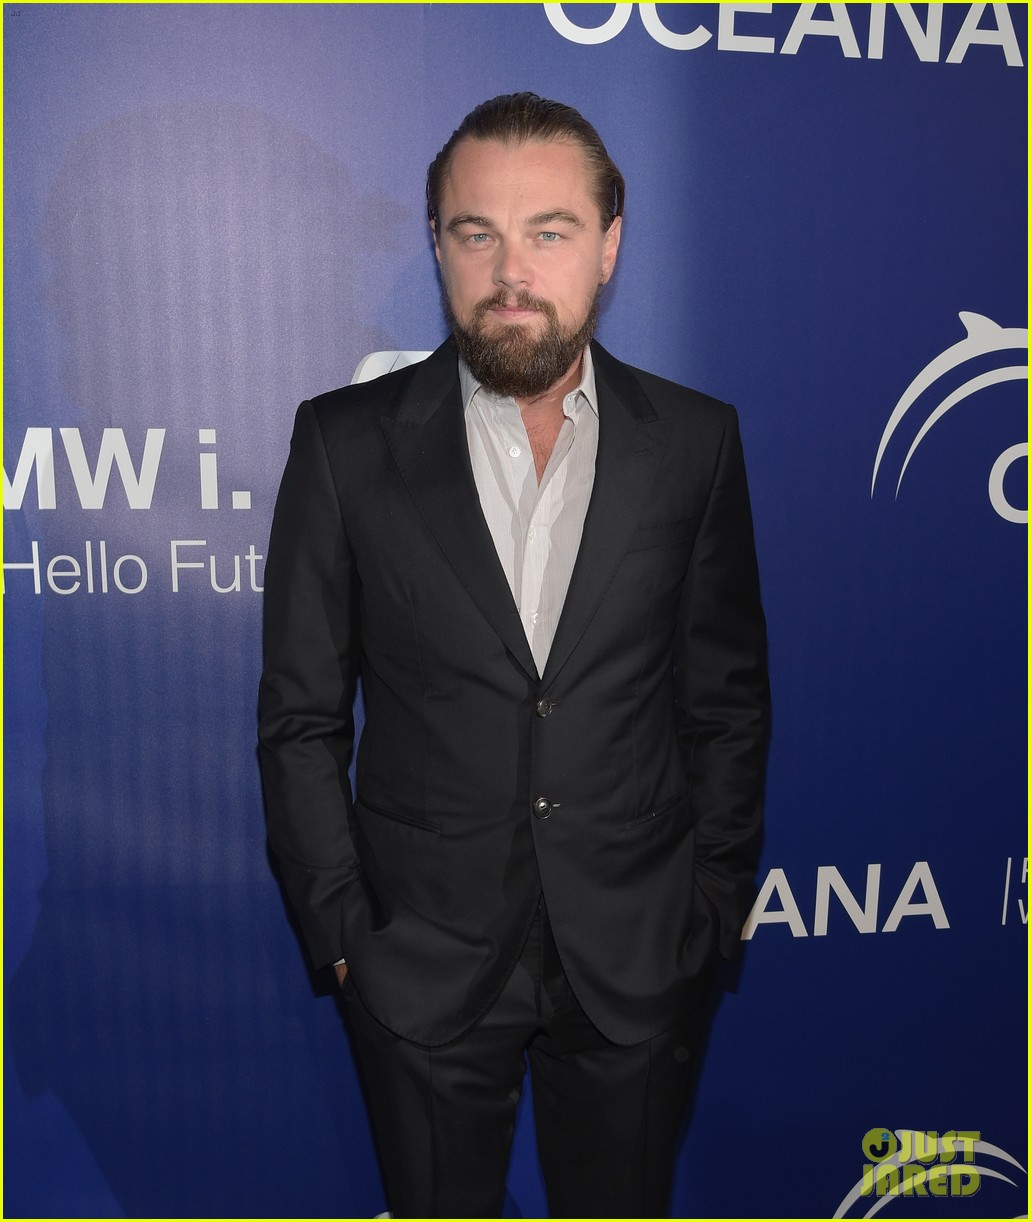 leonardo dicaprio oceana sea change summer party 2014 06